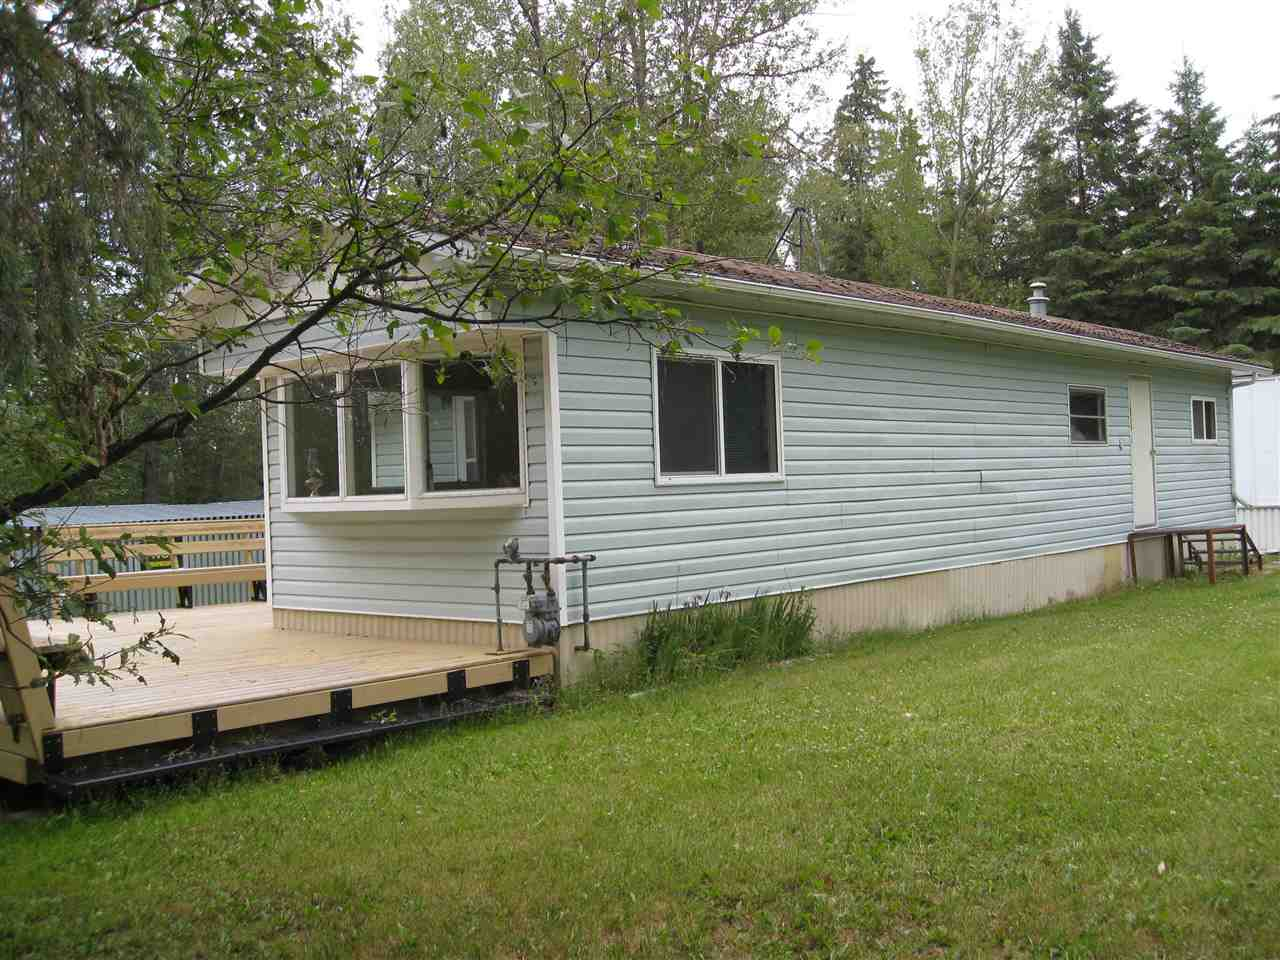 Main Photo: 4 5124 Twp Rd 554: Rural Lac Ste. Anne County House for sale : MLS®# E4119087